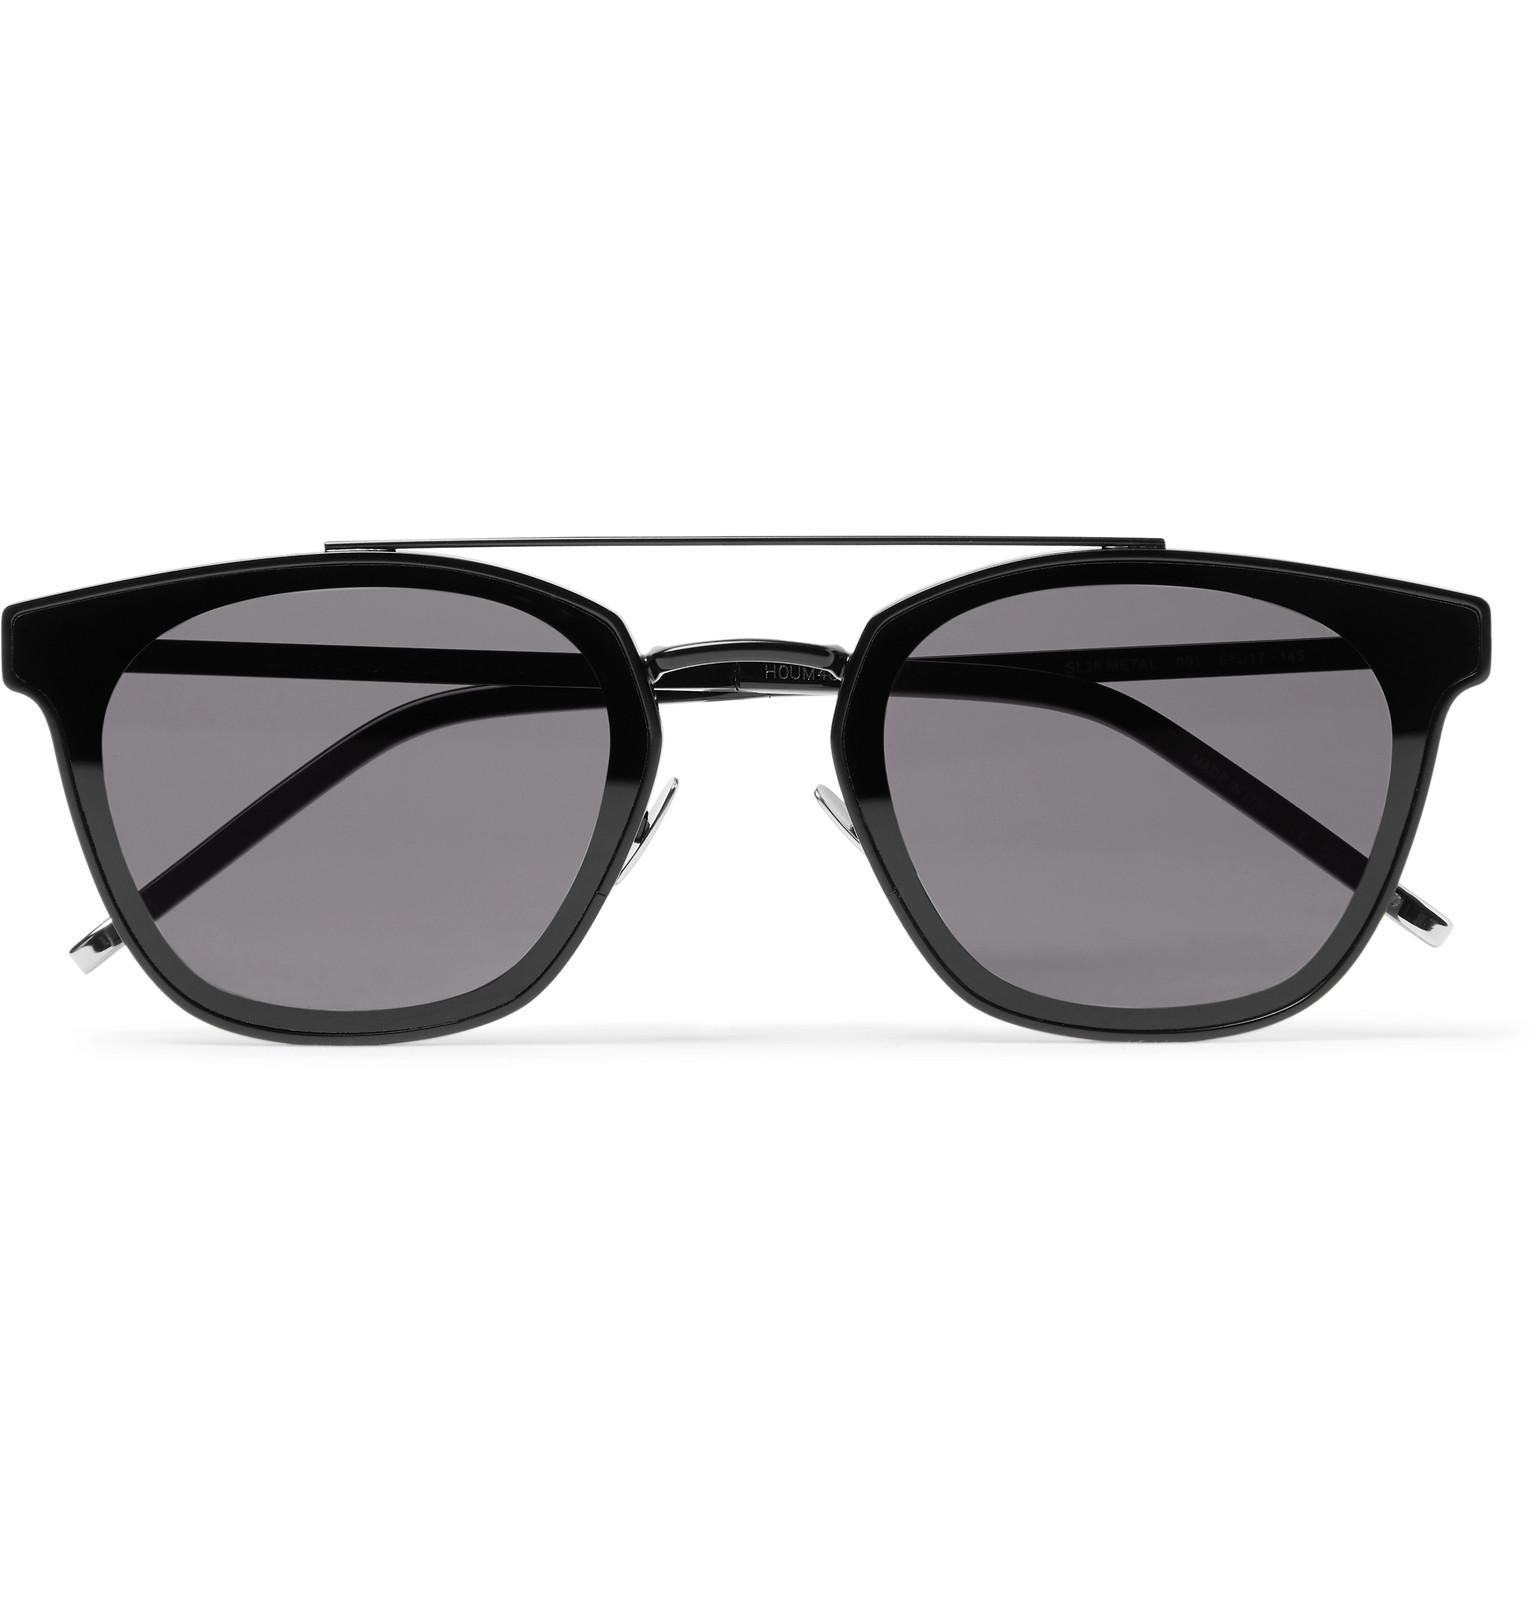 10de787cd1 Lyst - Saint Laurent Aviator-style Metal Sunglasses in Black for Men